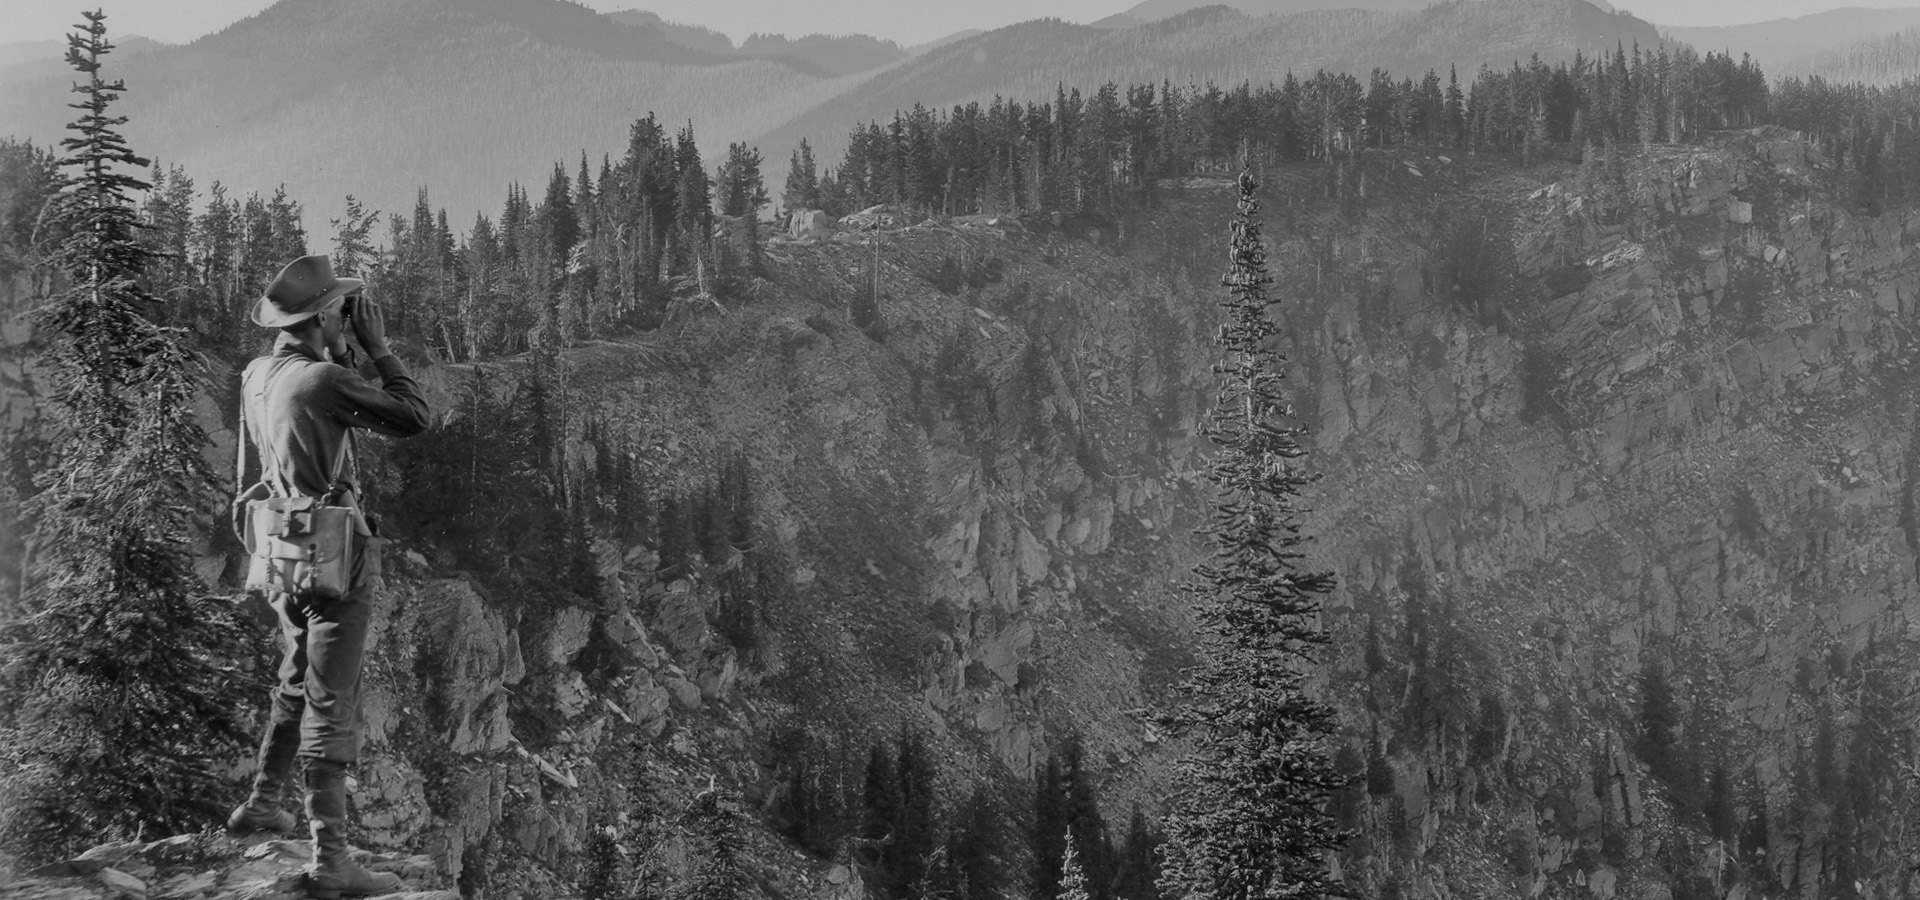 black and white photo of ranger looking over a rocky mountain valley